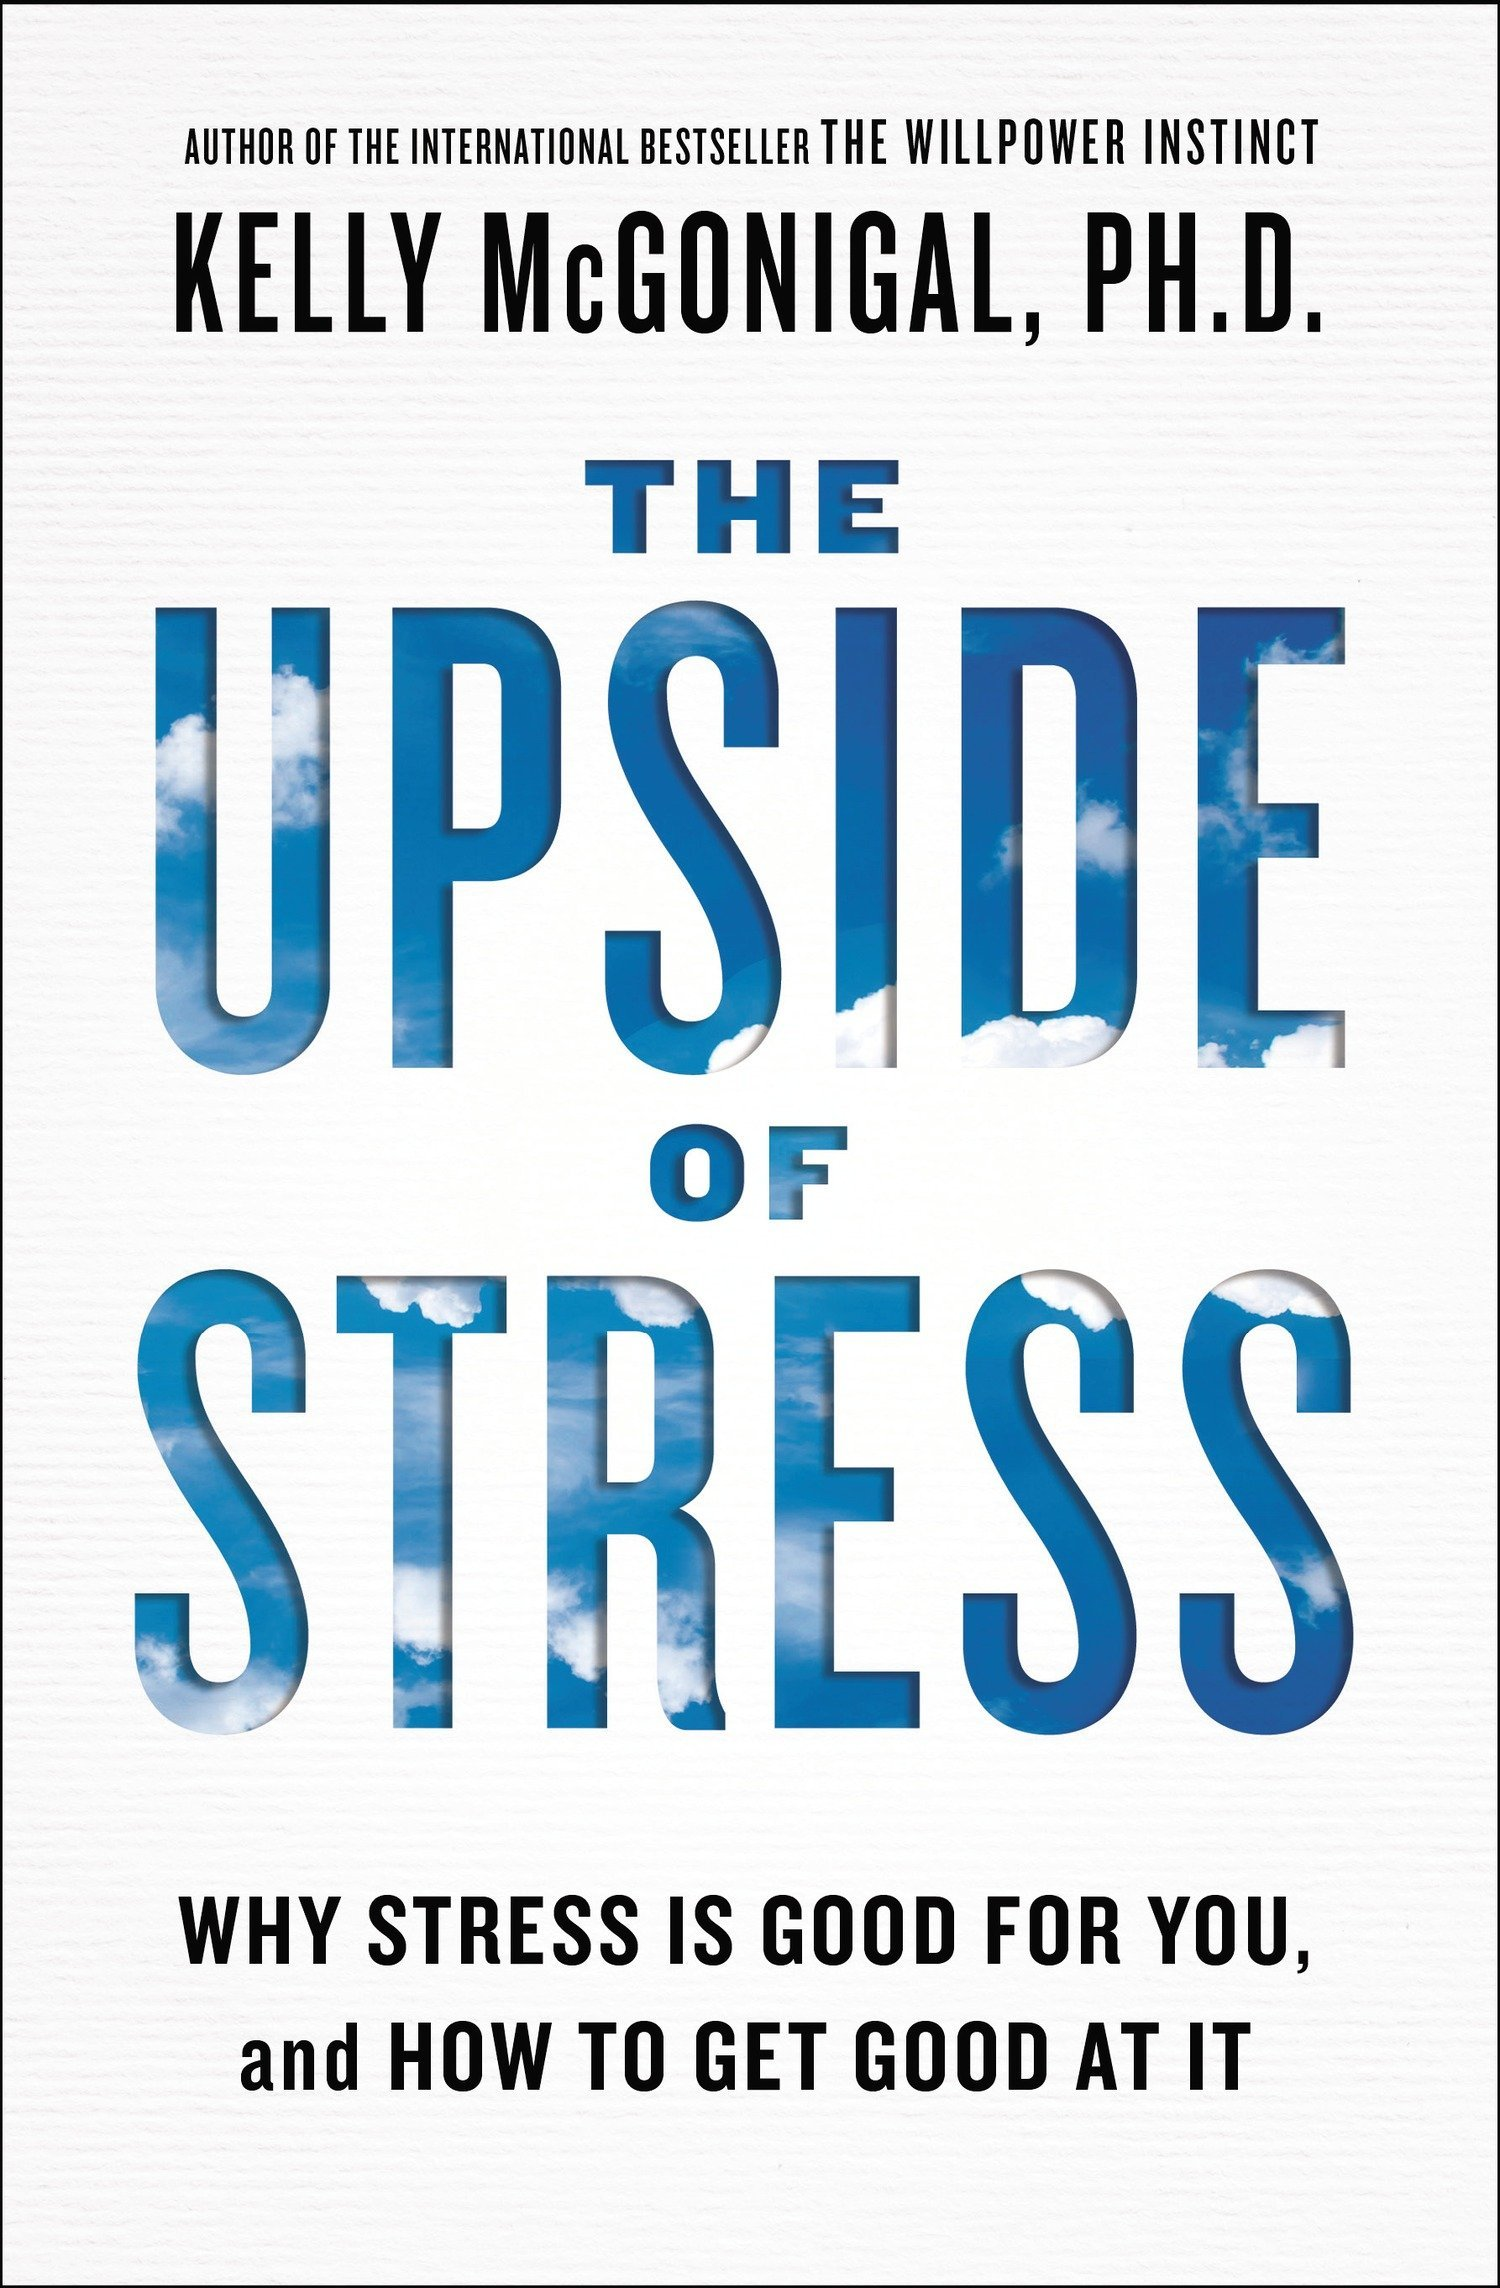 The Upside of Stress: Why Stress Is Good for You and How to Get Good at It